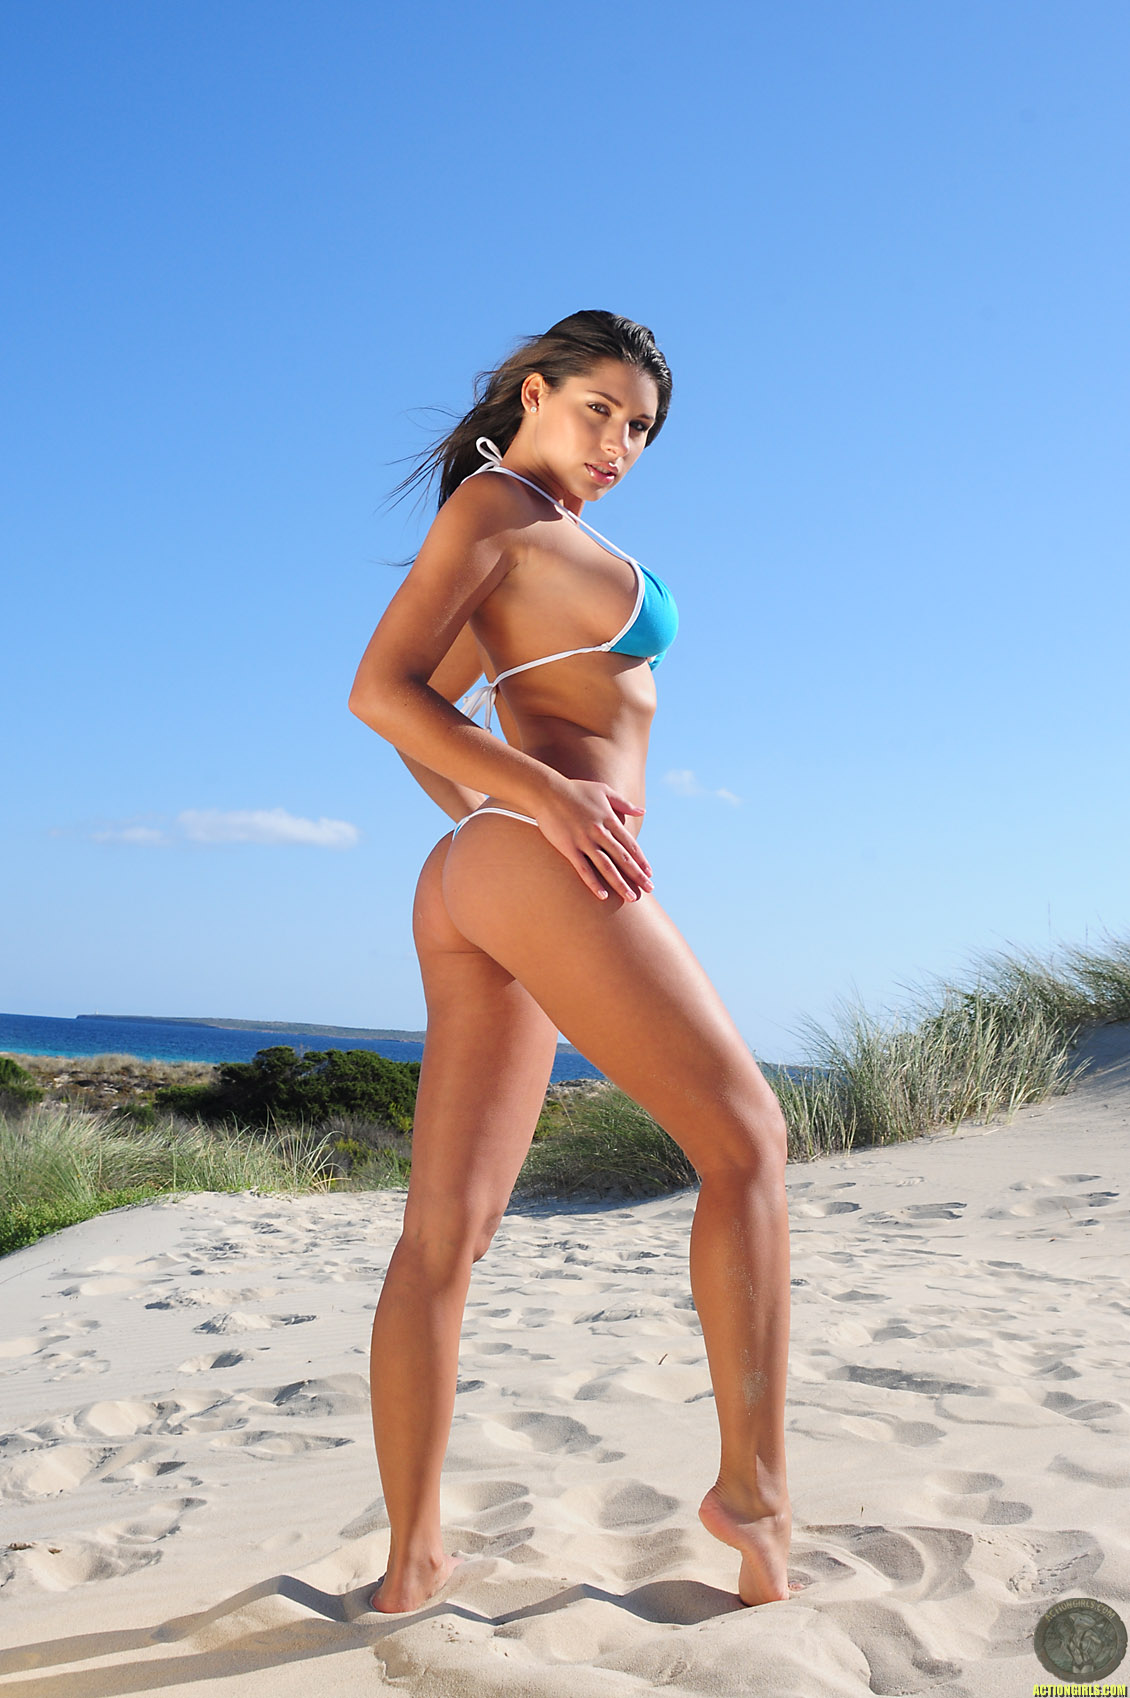 Zafira, brunette, strip, bikini, sand, beach